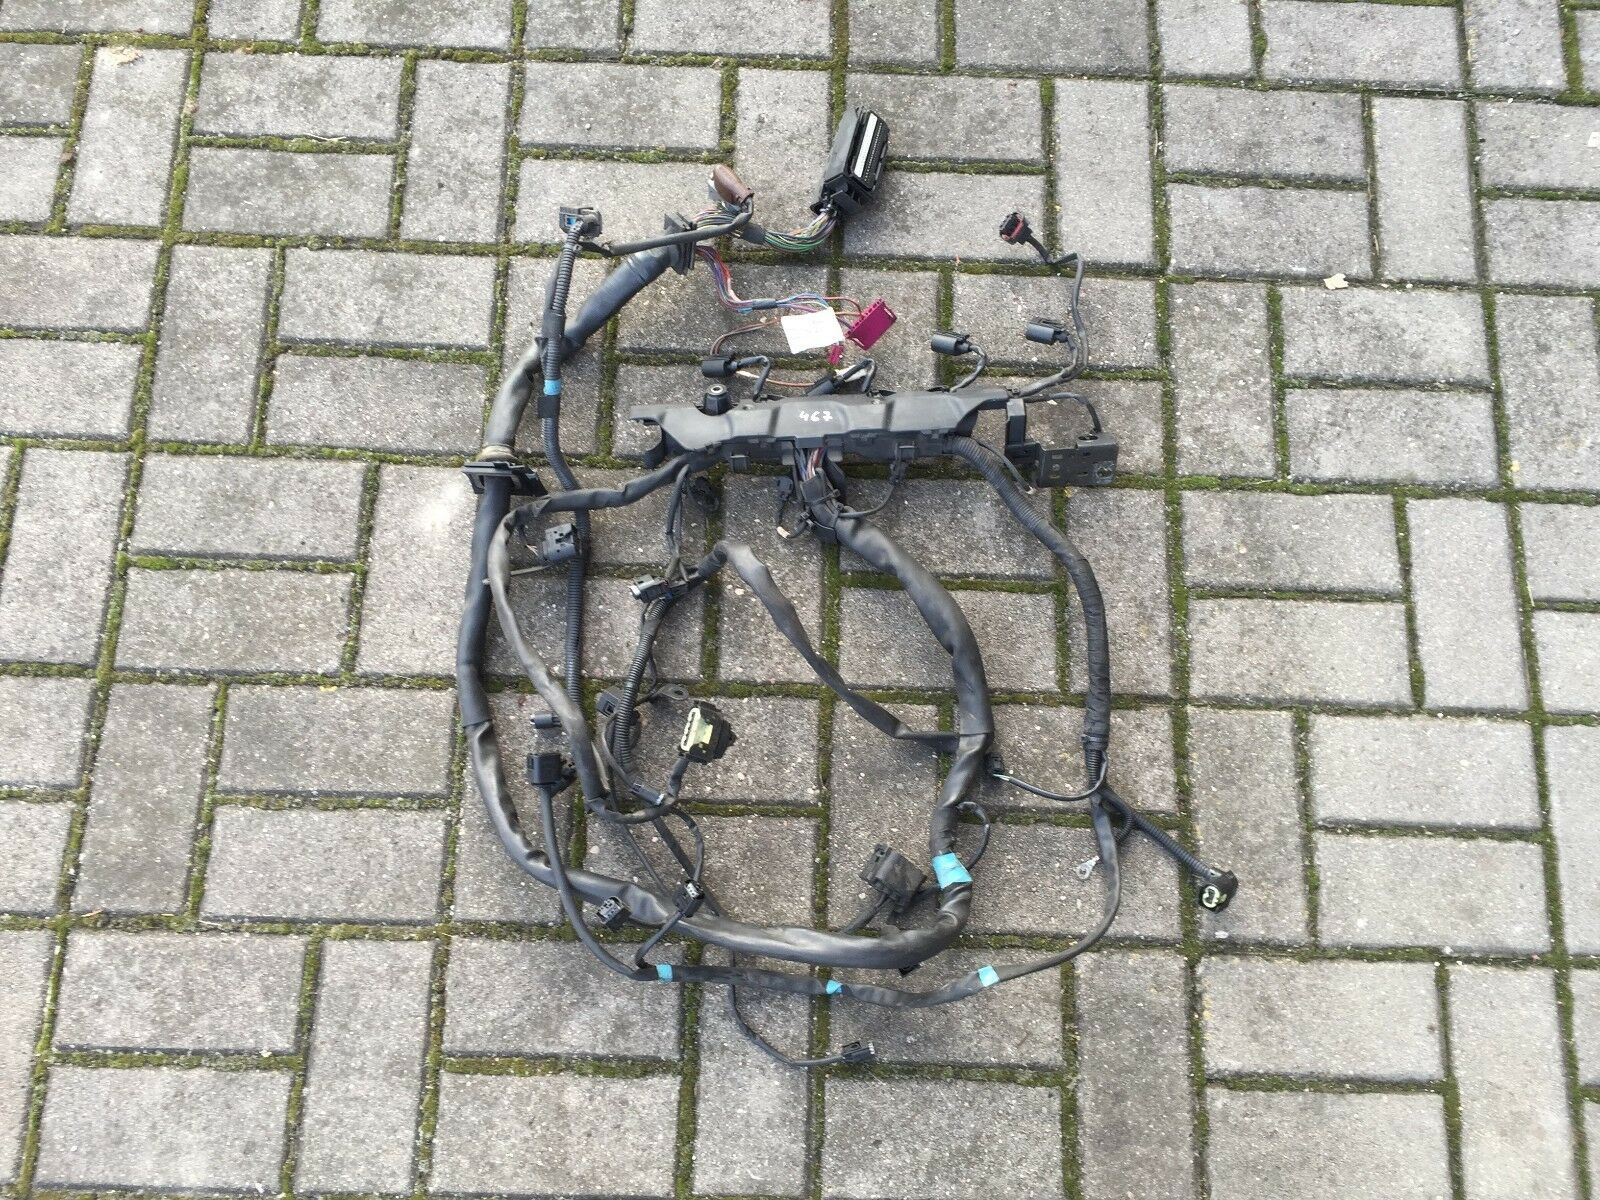 2006 Mercedes C Class W203 C220 Cdi 22 Diesel Om646 Engine Wiring Harness Loom 1 Of 6 See More